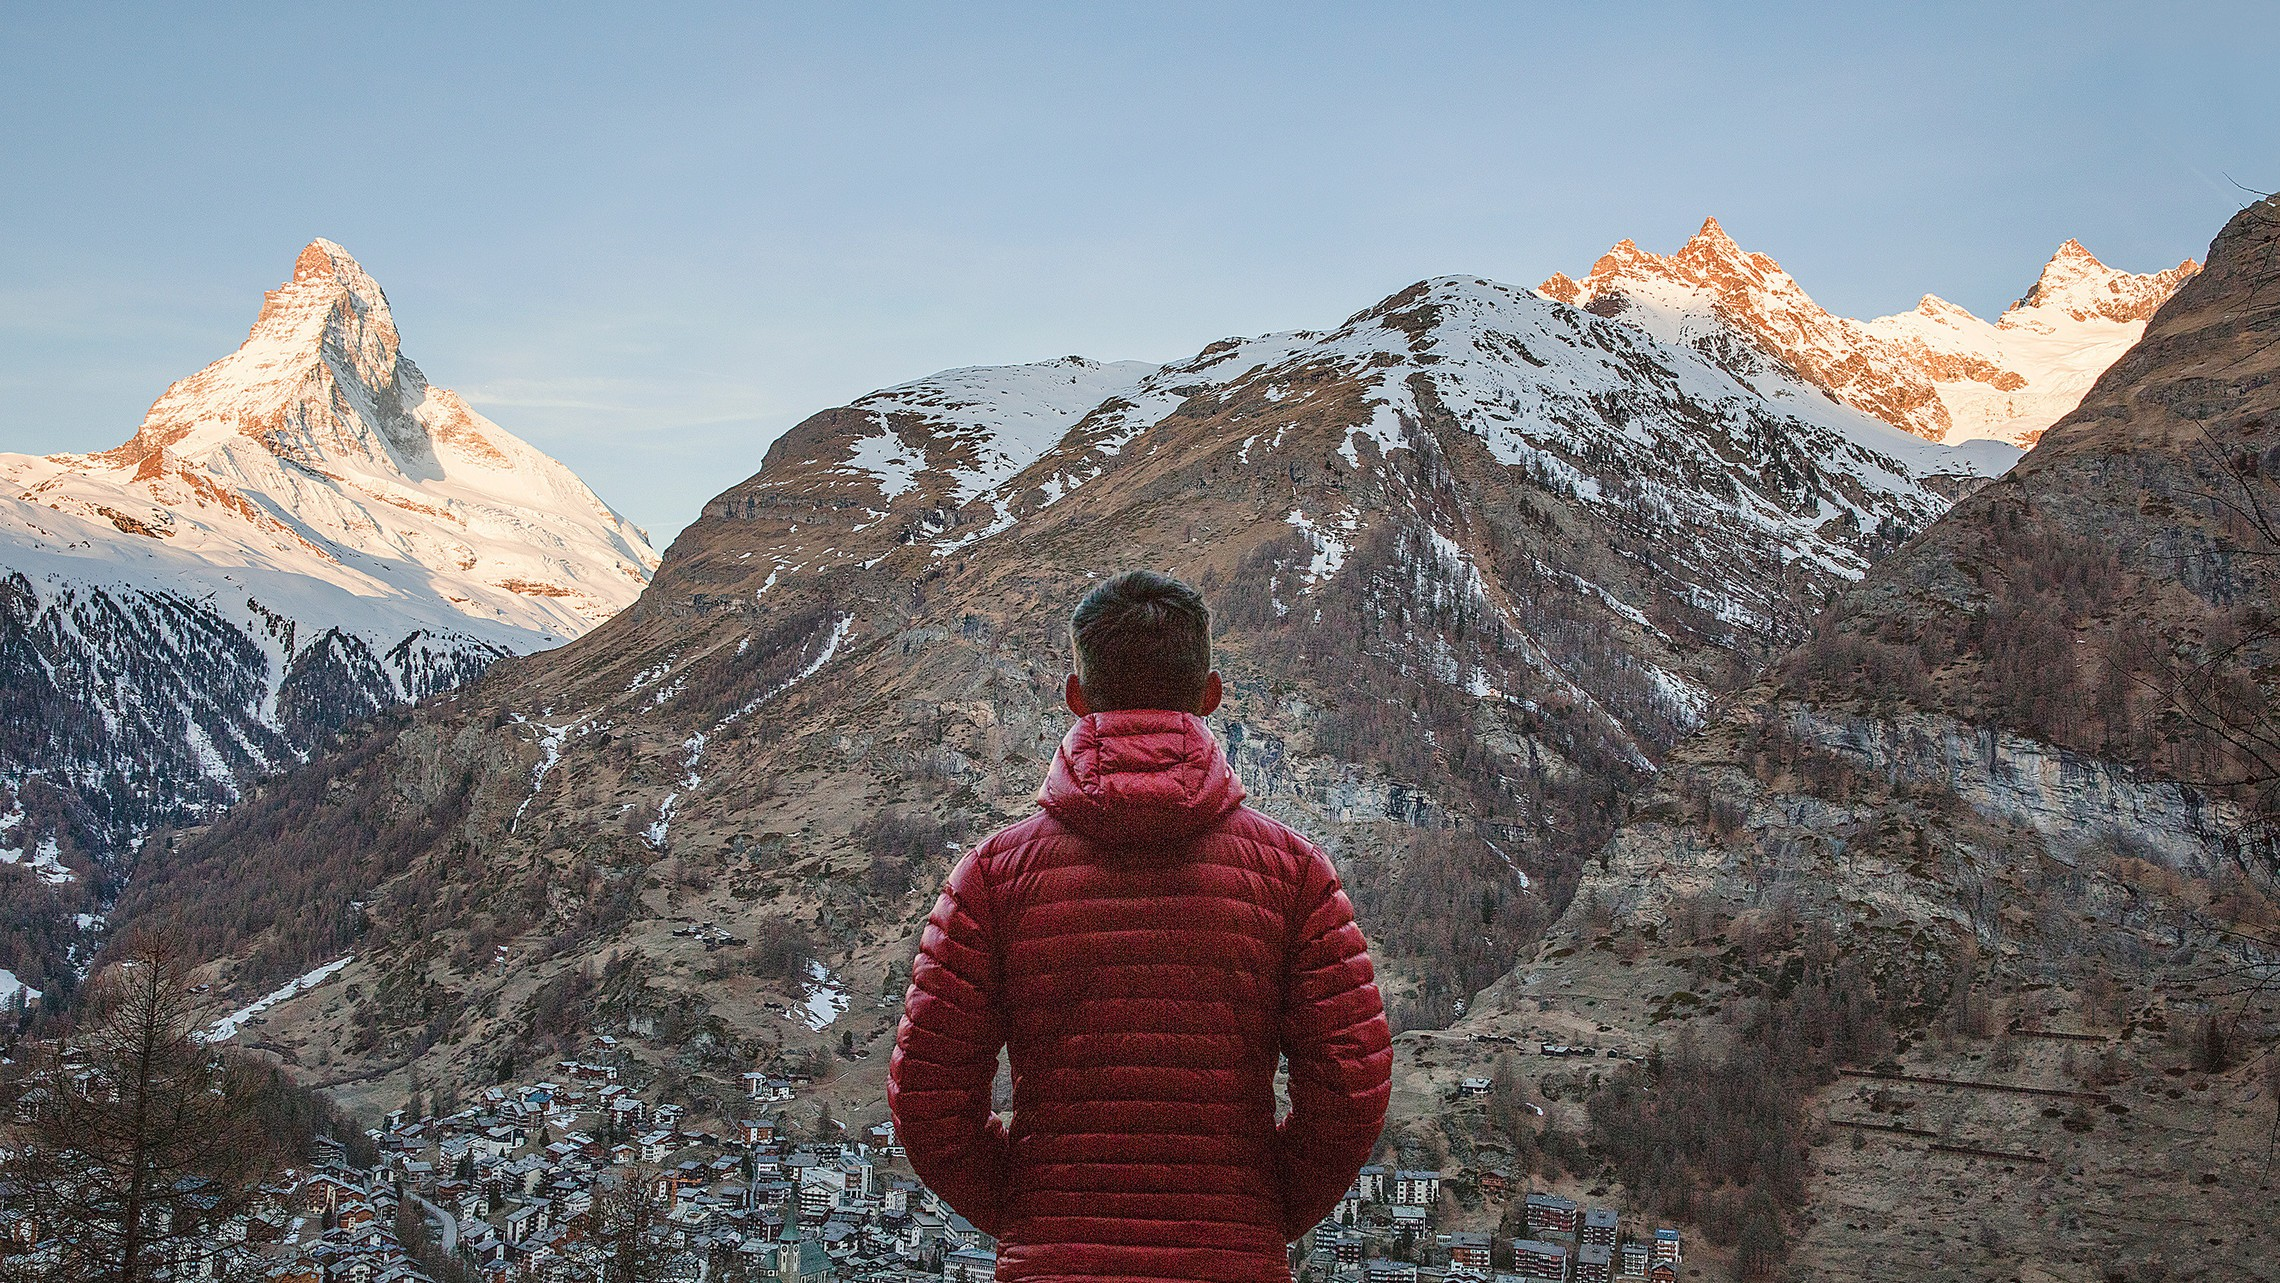 Man In Red Jacket Looking At The Alps In Zermatt Switzerland